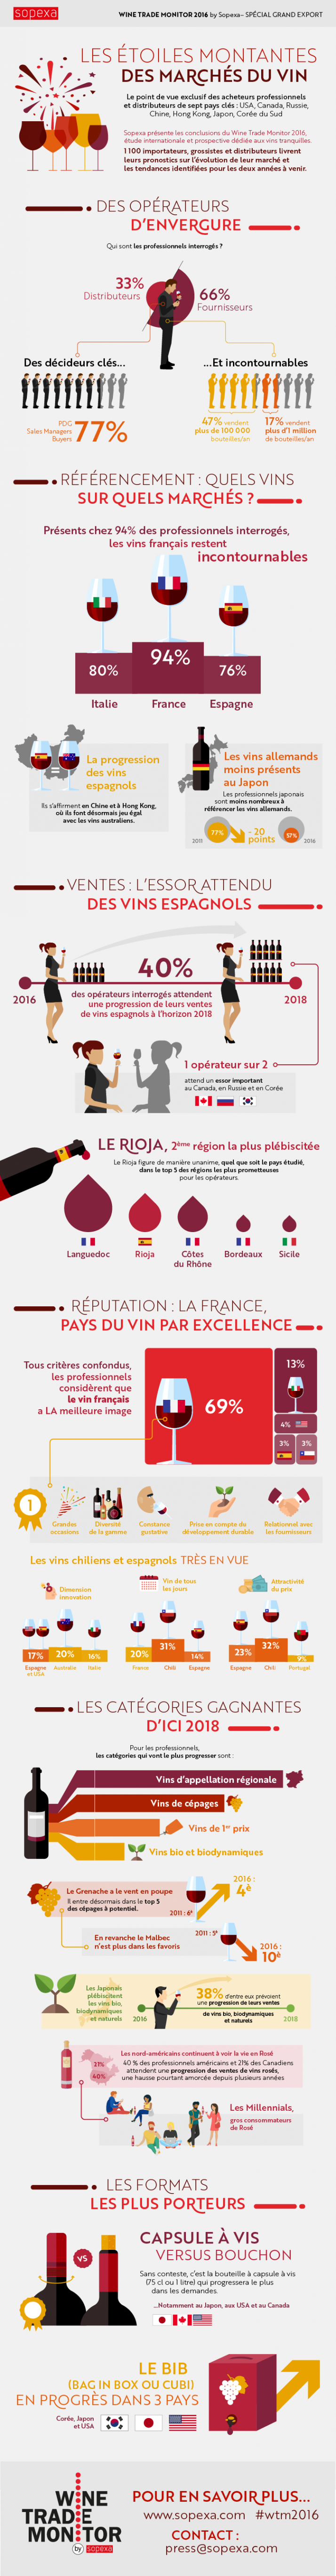 infographie-wtm2016-fr_20161013.png